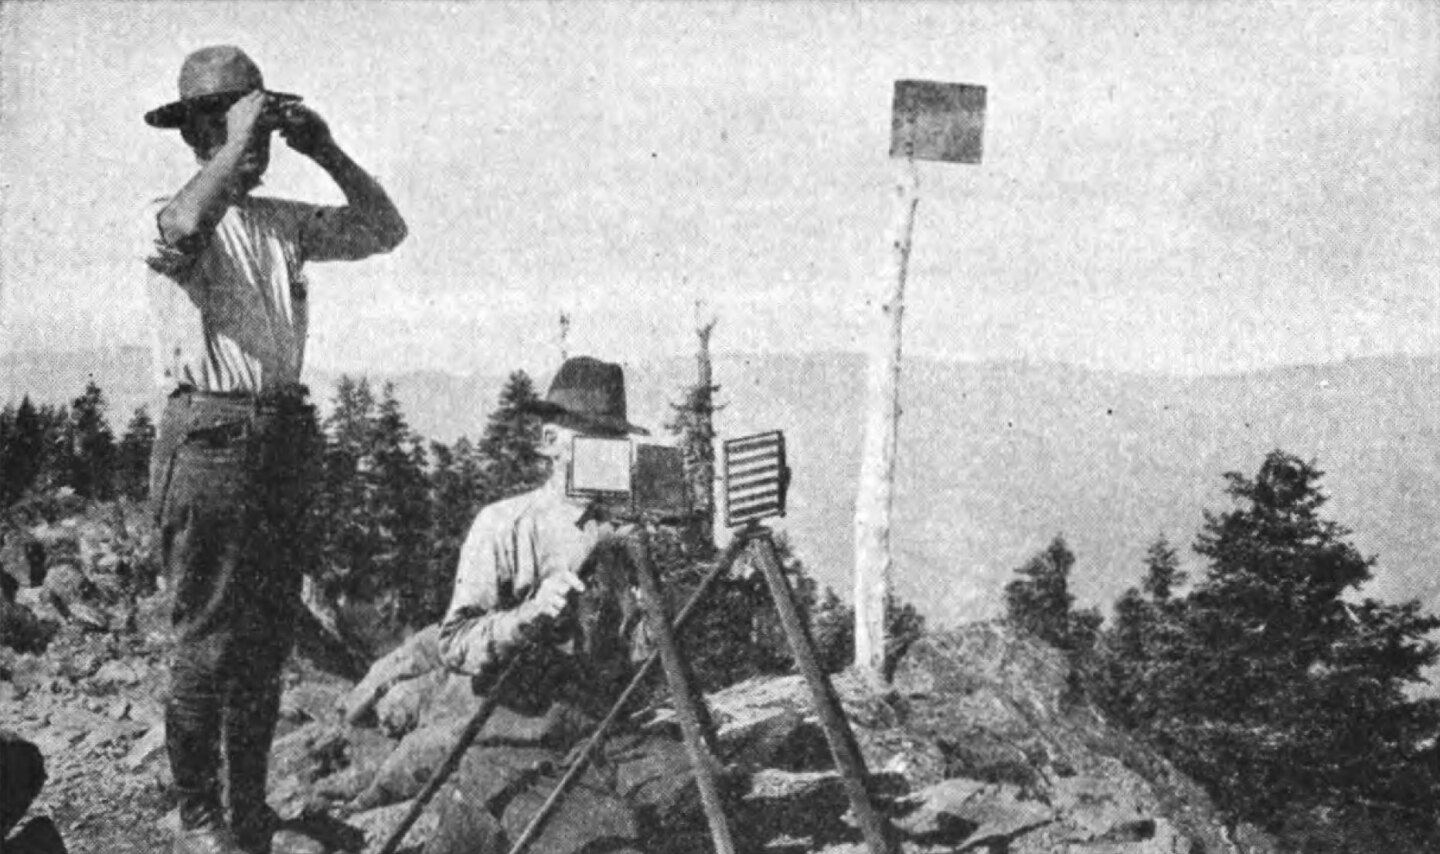 Black Butte fire lookout in Mendicino, CA, on August 30, 1923, by L.A. Barrett, for the US Forest Service.